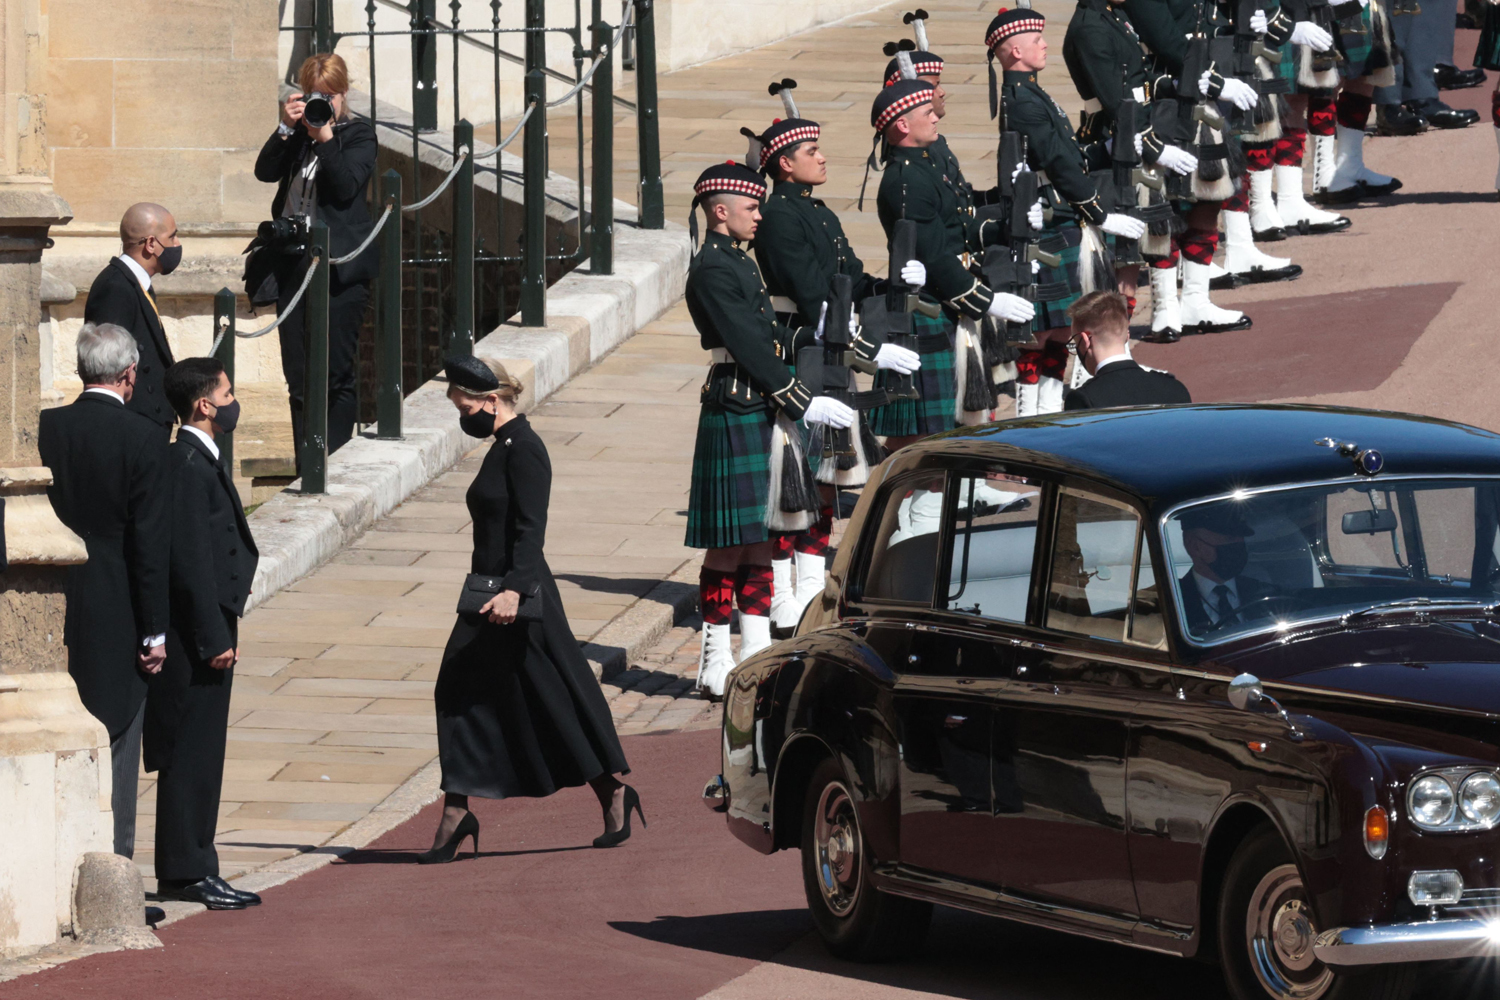 Kate Middleton and Prince William Head to Windsor for Prince Philip's Funeral